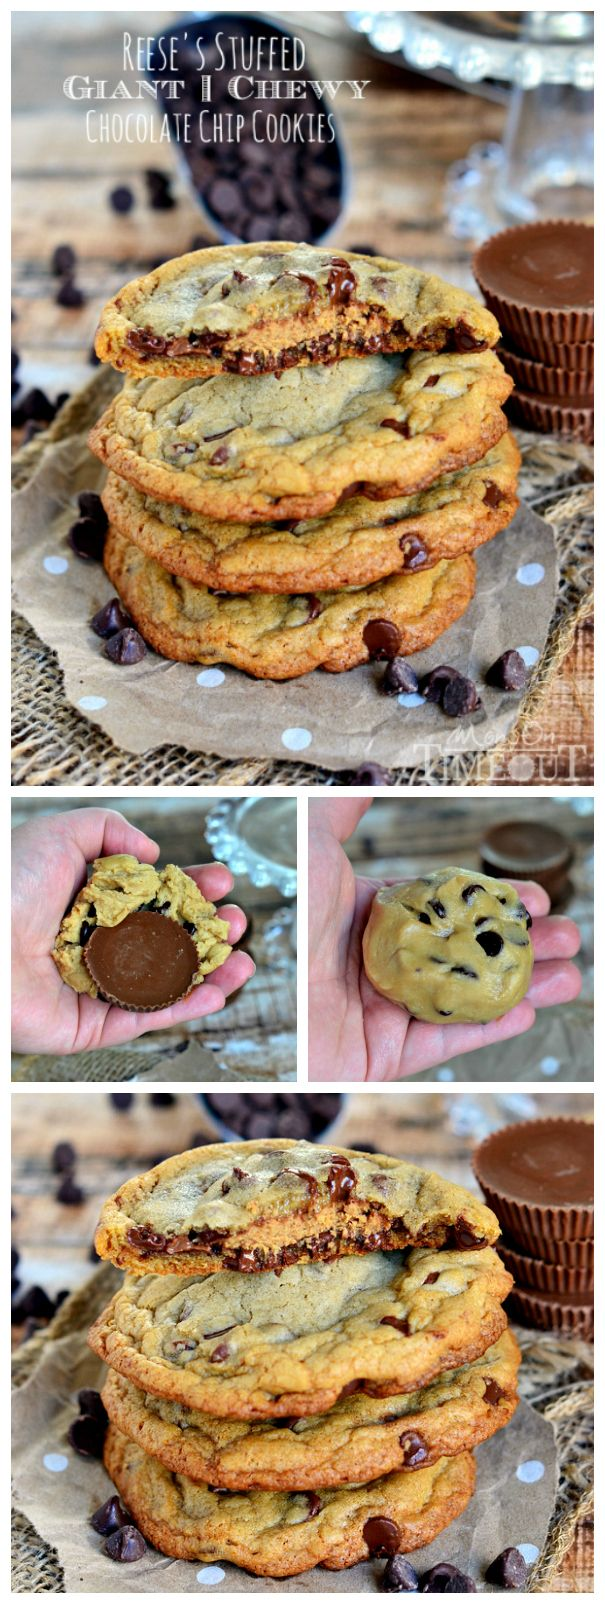 Reese's Stuffed Giant, Chewy Chocolate Chip Cookies